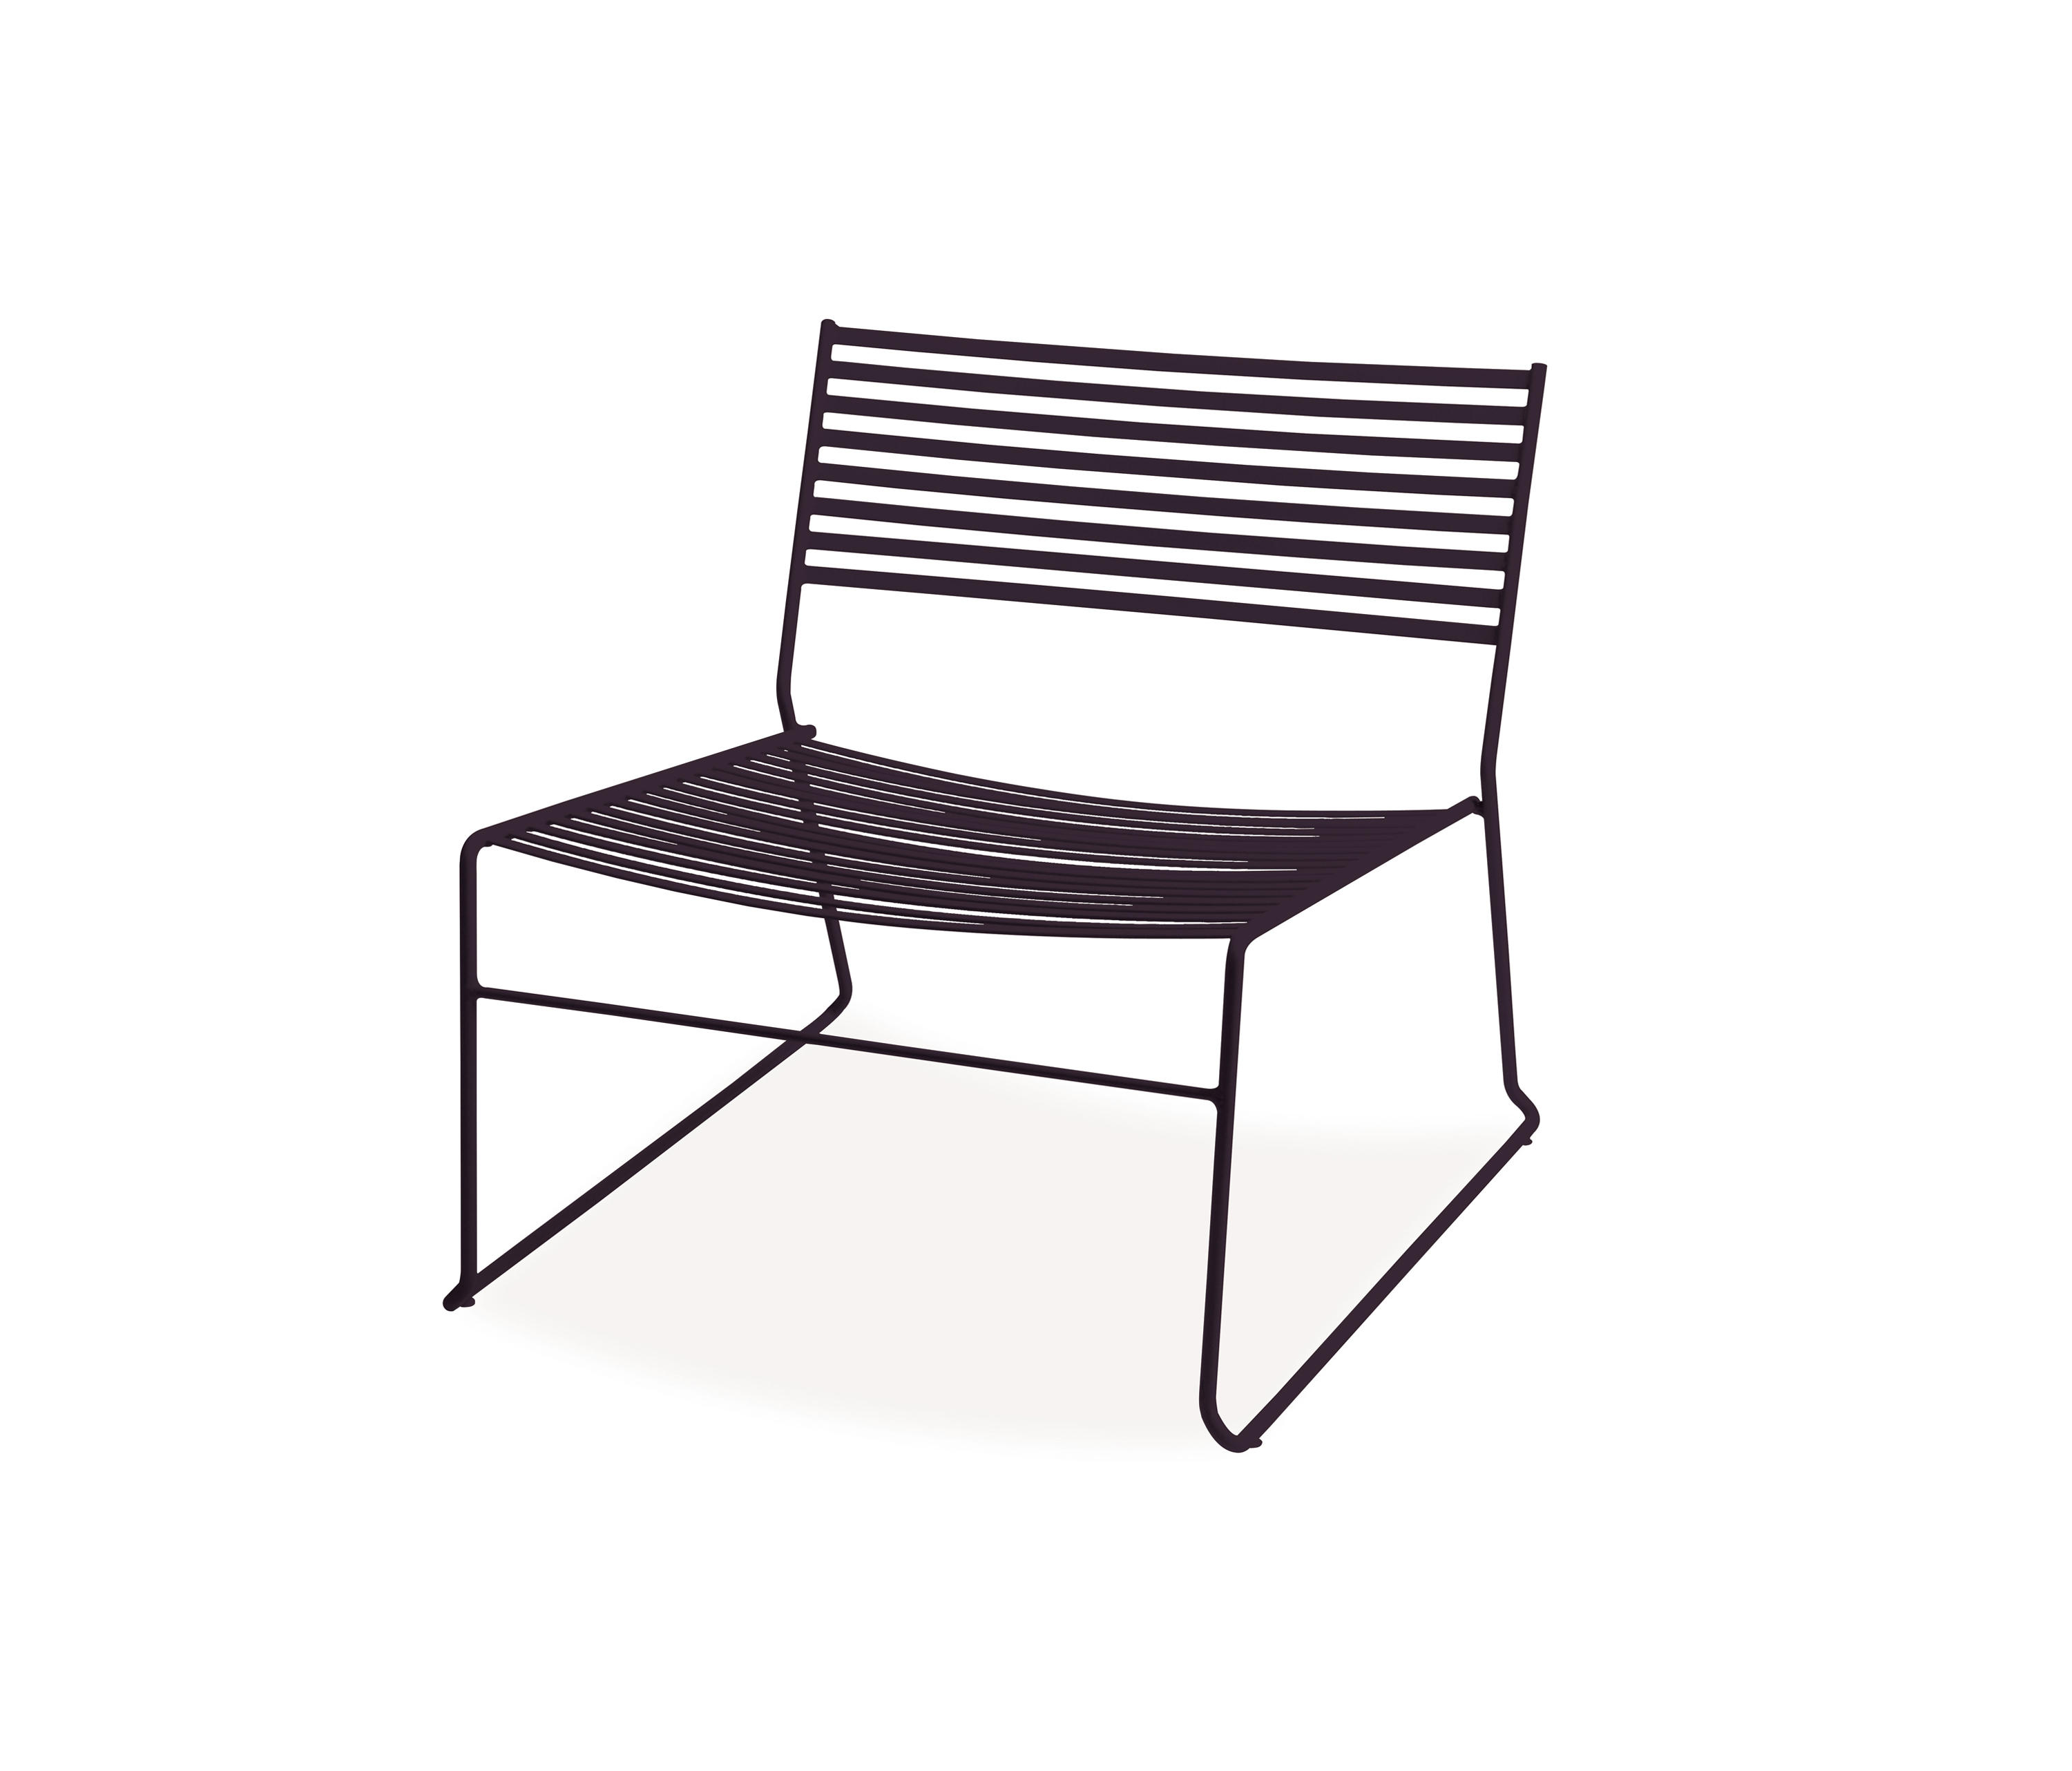 AERO 023 Garden armchairs from EMU Group